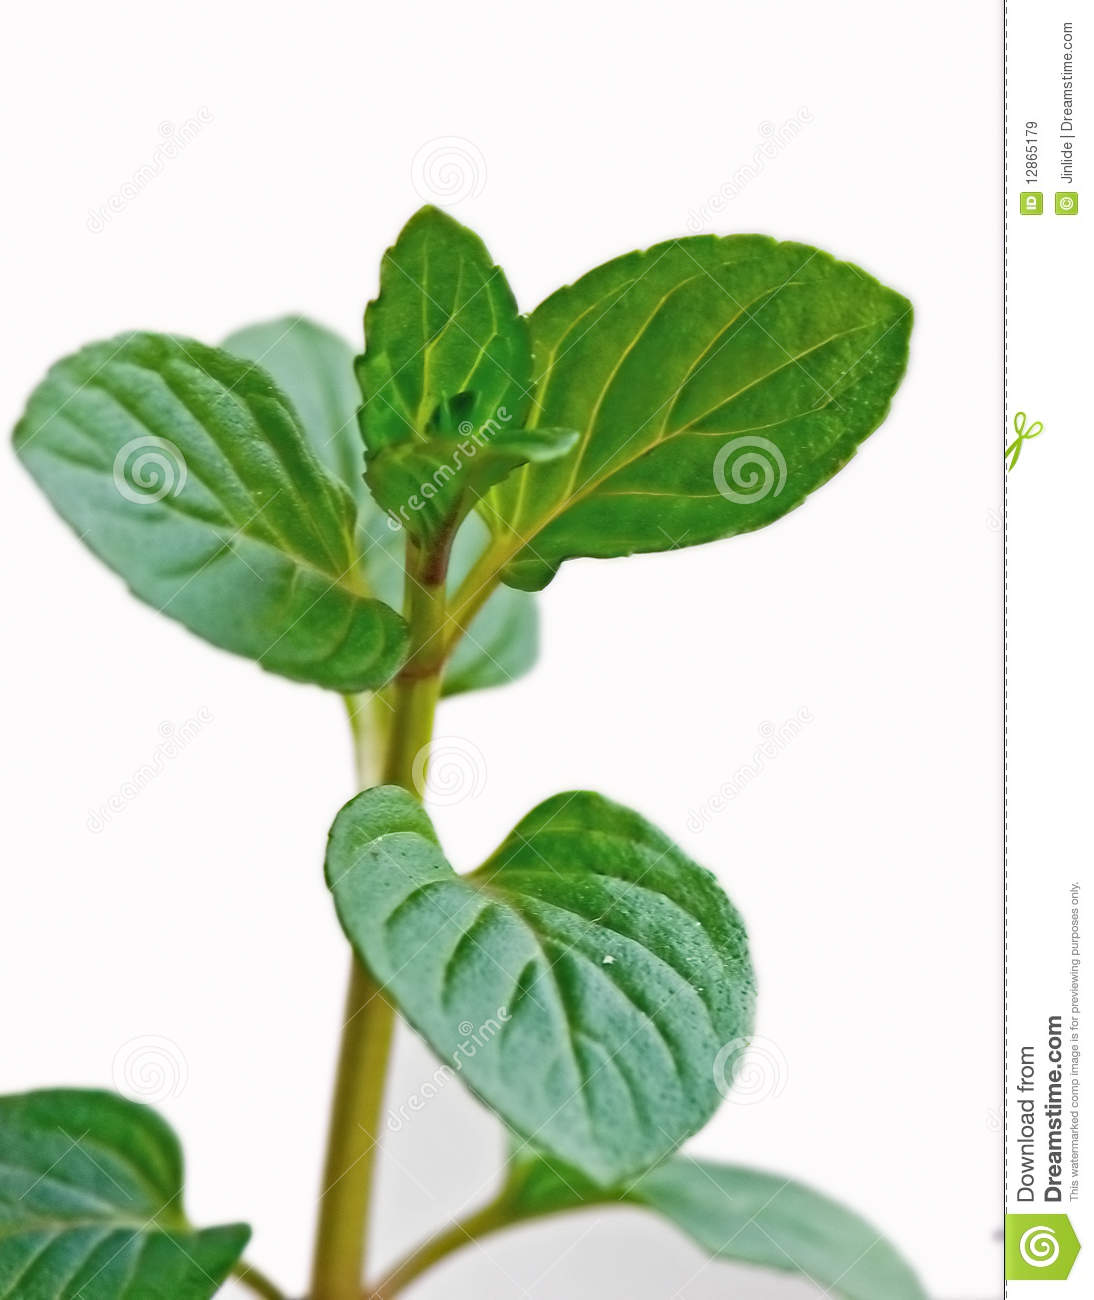 Chocolate Mint Plant Royalty Free Stock Images - Image: 12865179